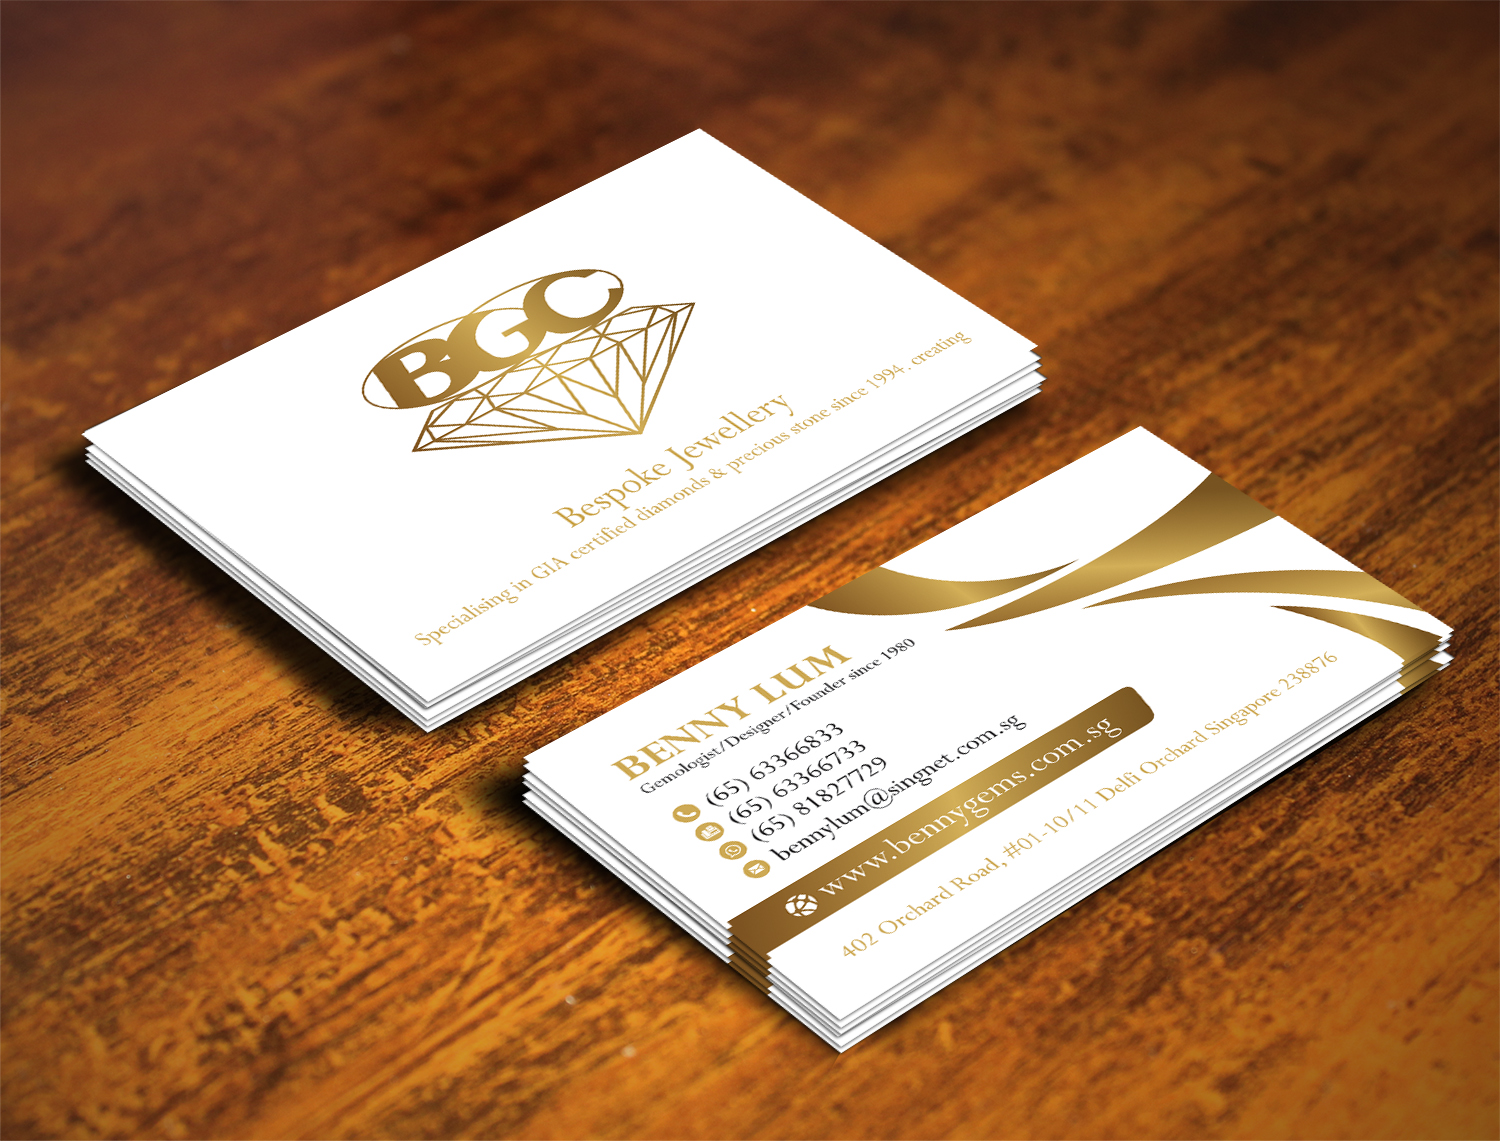 Professional upmarket jewelry store business card design for a business card design by alhemique1 for this project design 12678081 reheart Gallery